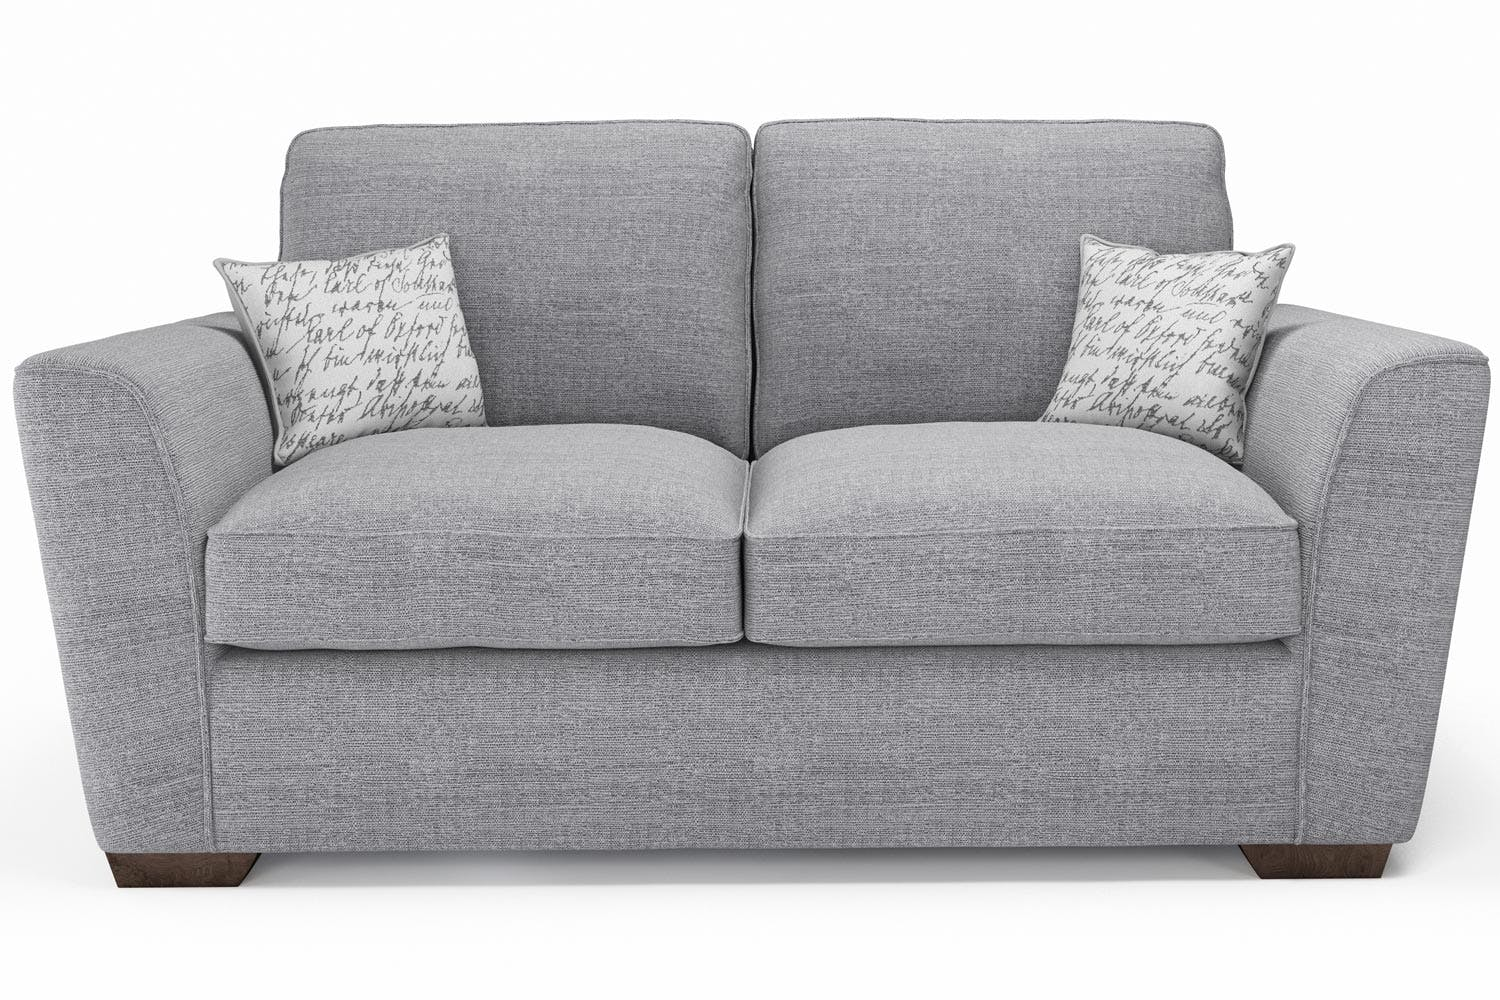 0358cc9f7061 Fantasia 2 Seater Sofa. 5 out of 5 stars. Read reviews.